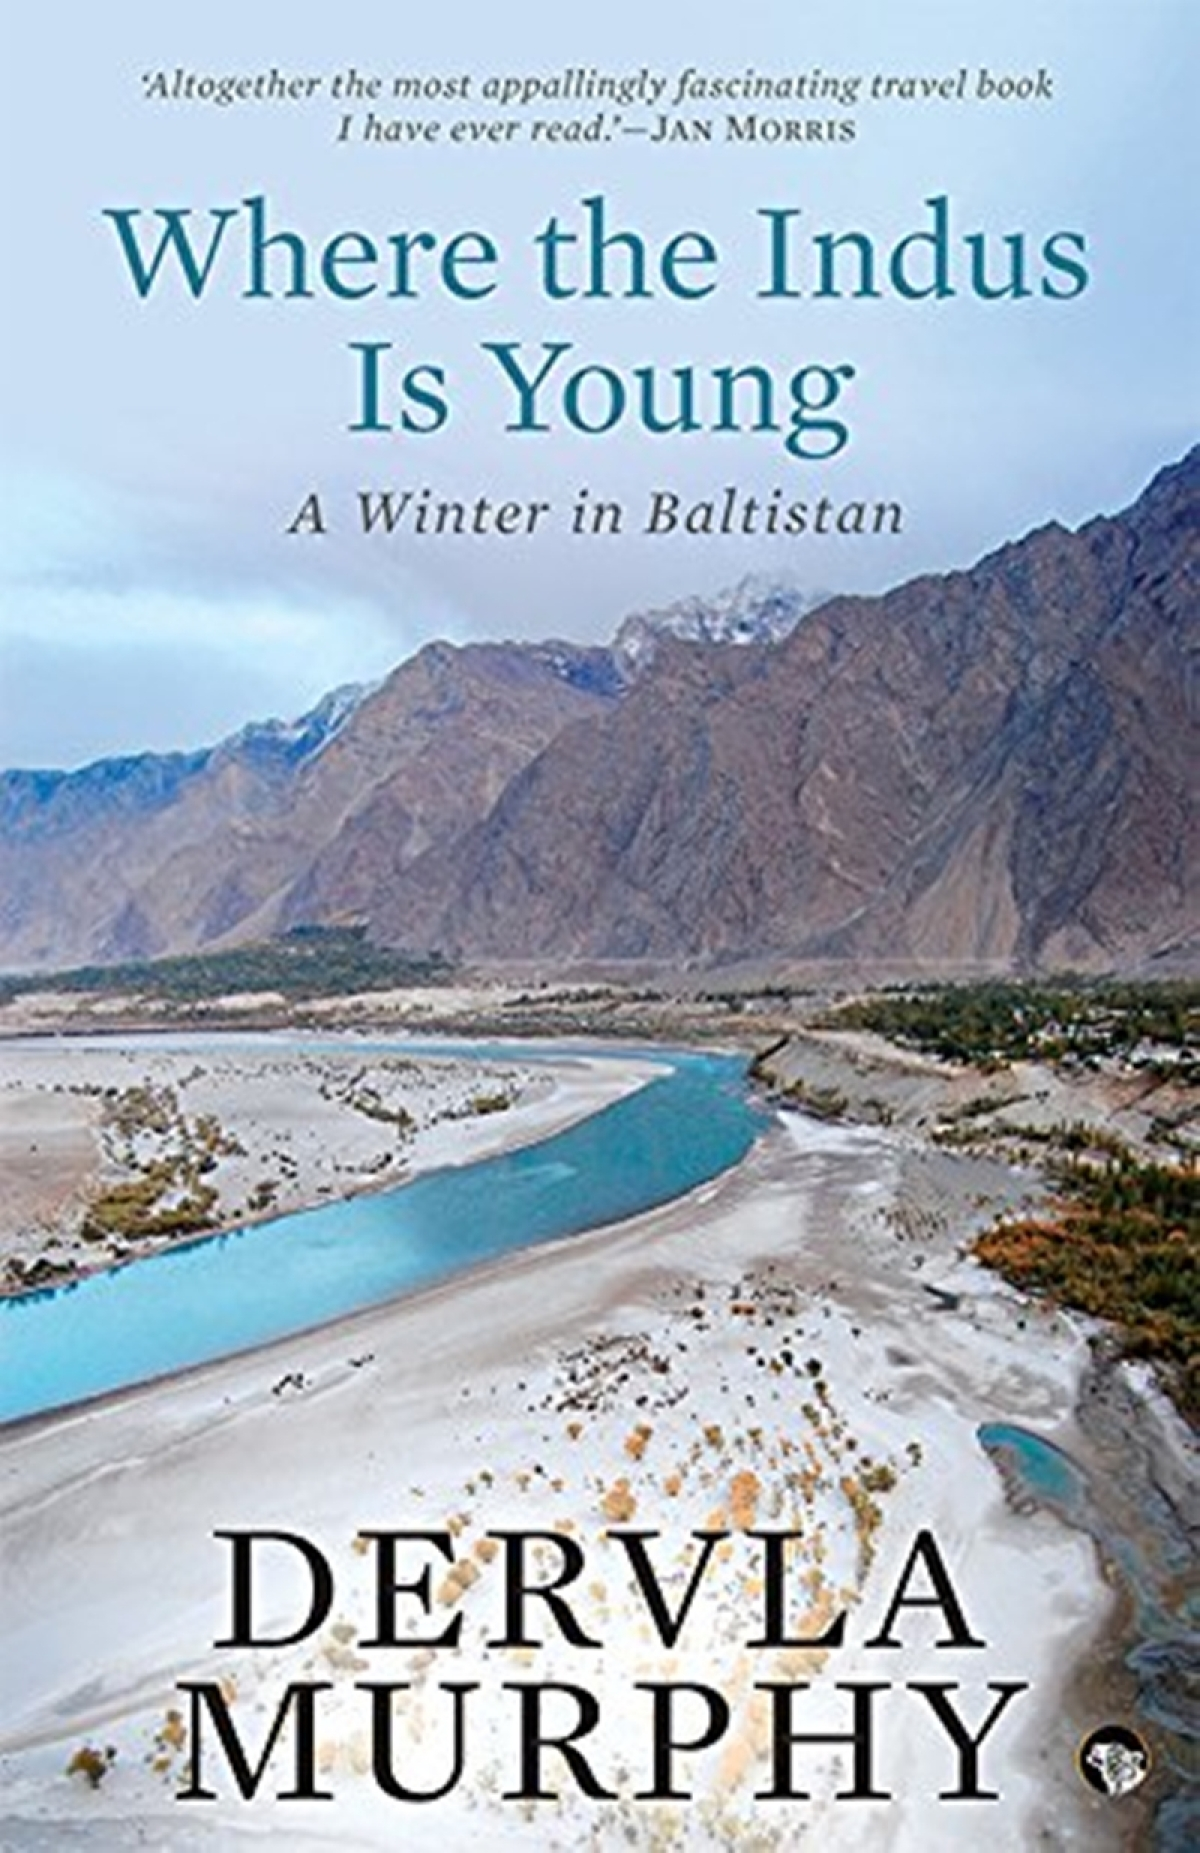 Where the Indus is Young: A Winter in Baltistan by Dervla Murphy-Review